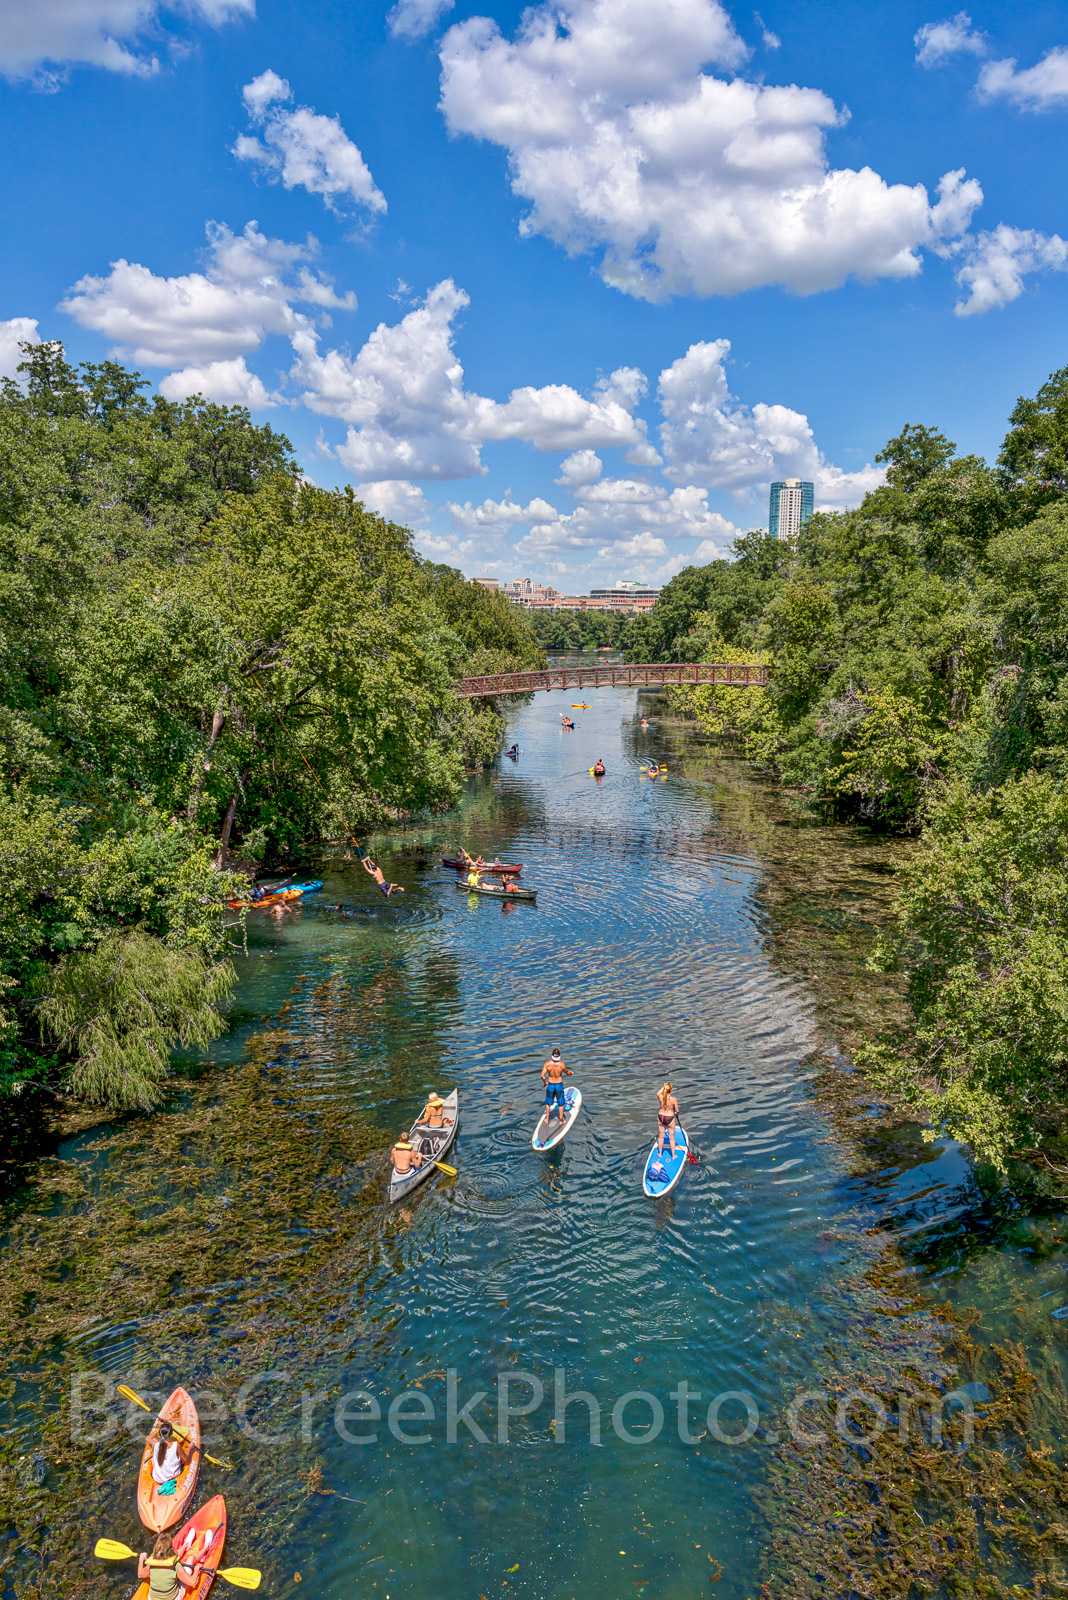 Austin, Barton Spring creek, Lady Bird Lake, Barton Springs, creek, trees, Canoeing, kayaking, Sups, Zilker park, Places to go in Austin, Places to see in Austin Tx, spring fed waters, natural, vertic, photo